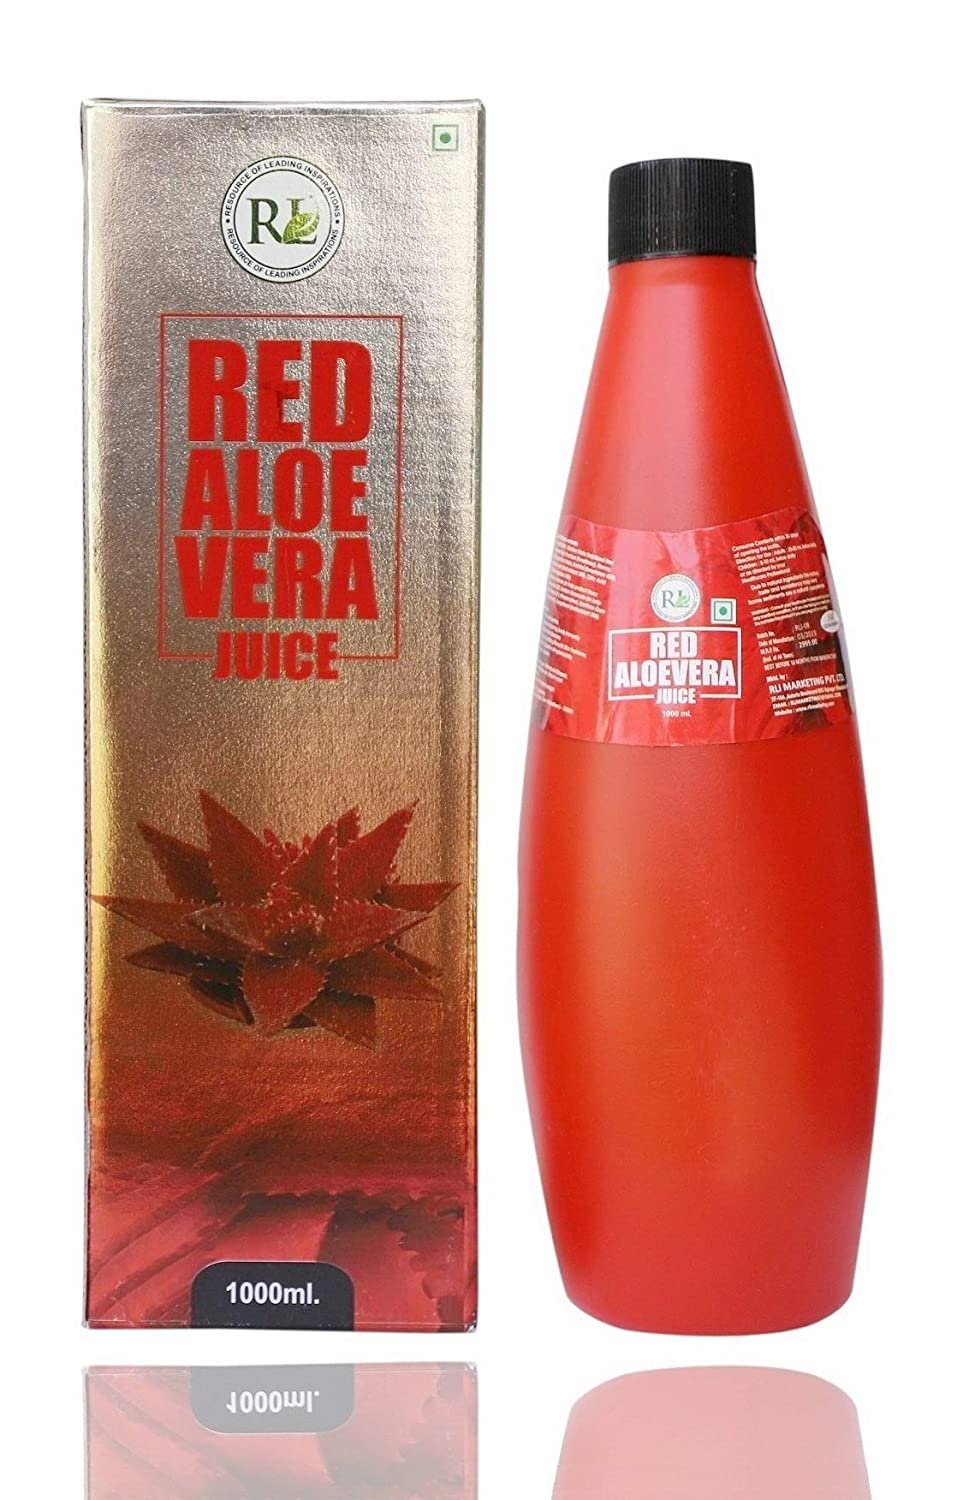 RLI Red Aloe Vera Juice (1 Litre) | 22 Times More Powerful